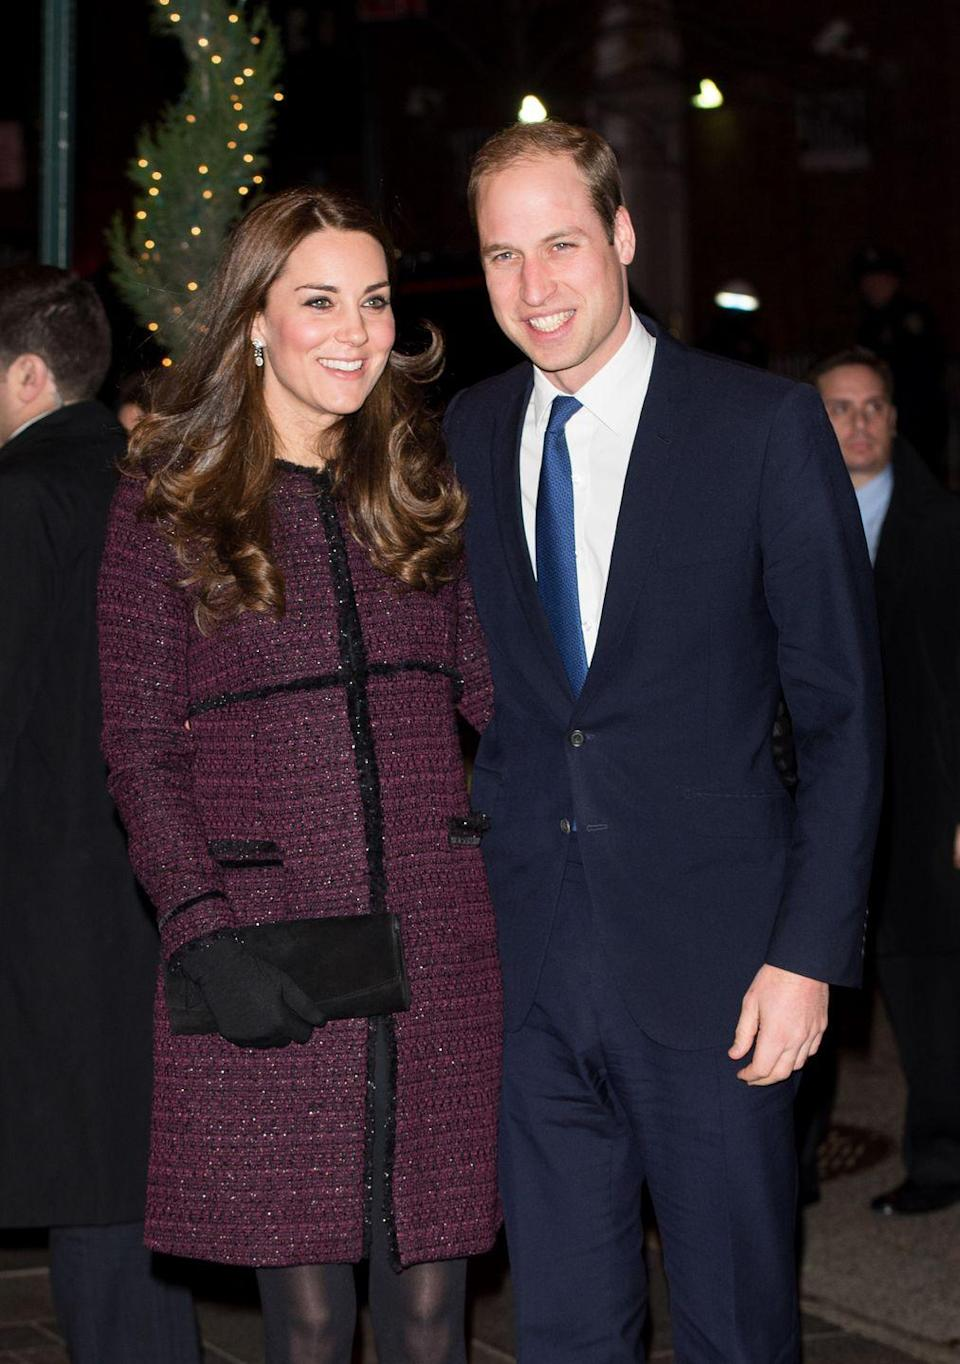 <p>Duchess Catherine and Prince William visit New York City during a whirlwind 3-day trip.</p>